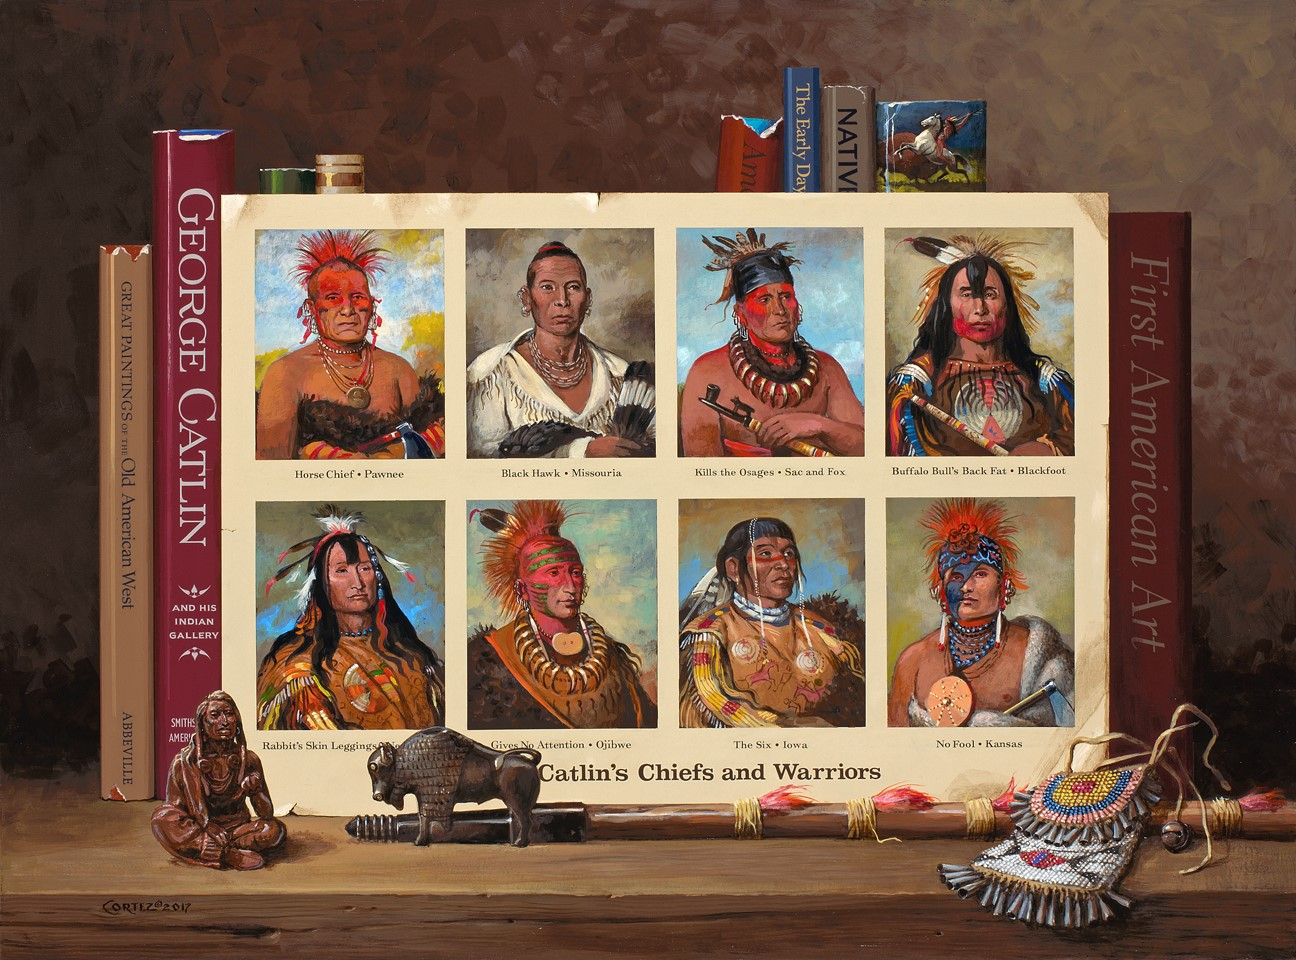 Catlin's Chiefs and Warriors